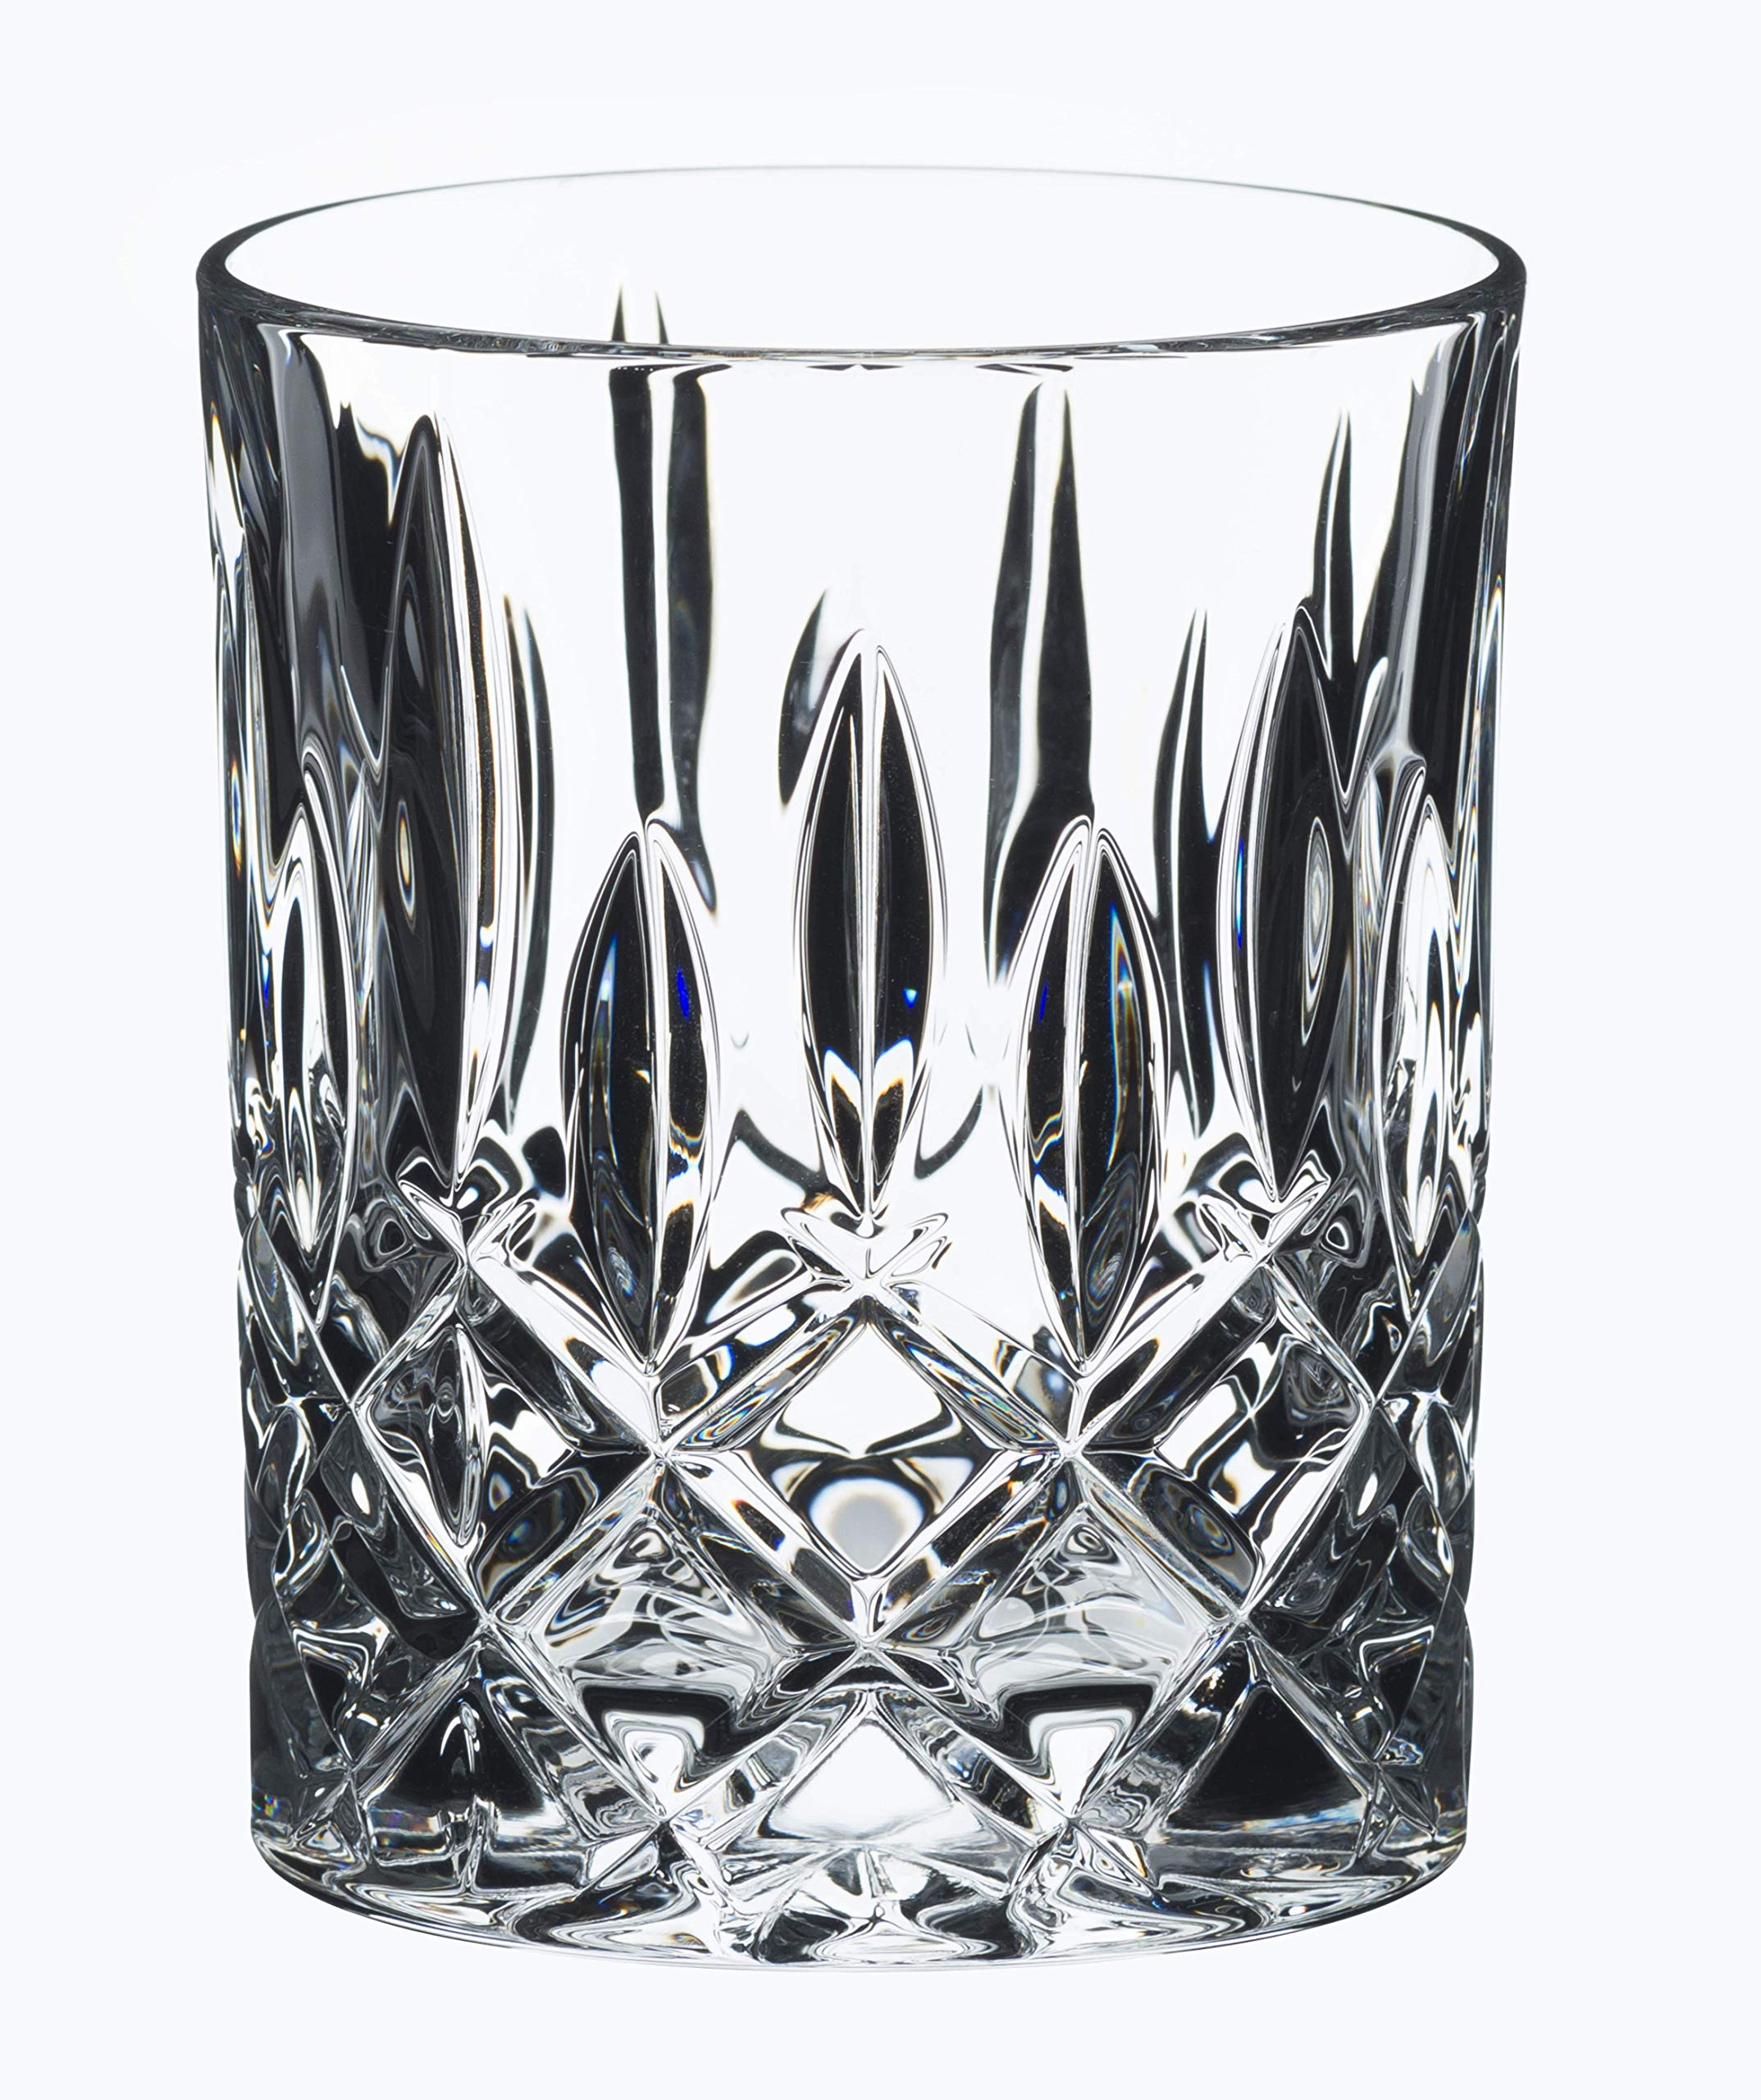 Riedel Tumbler Spey Whisky, Set of 2 by Riedel